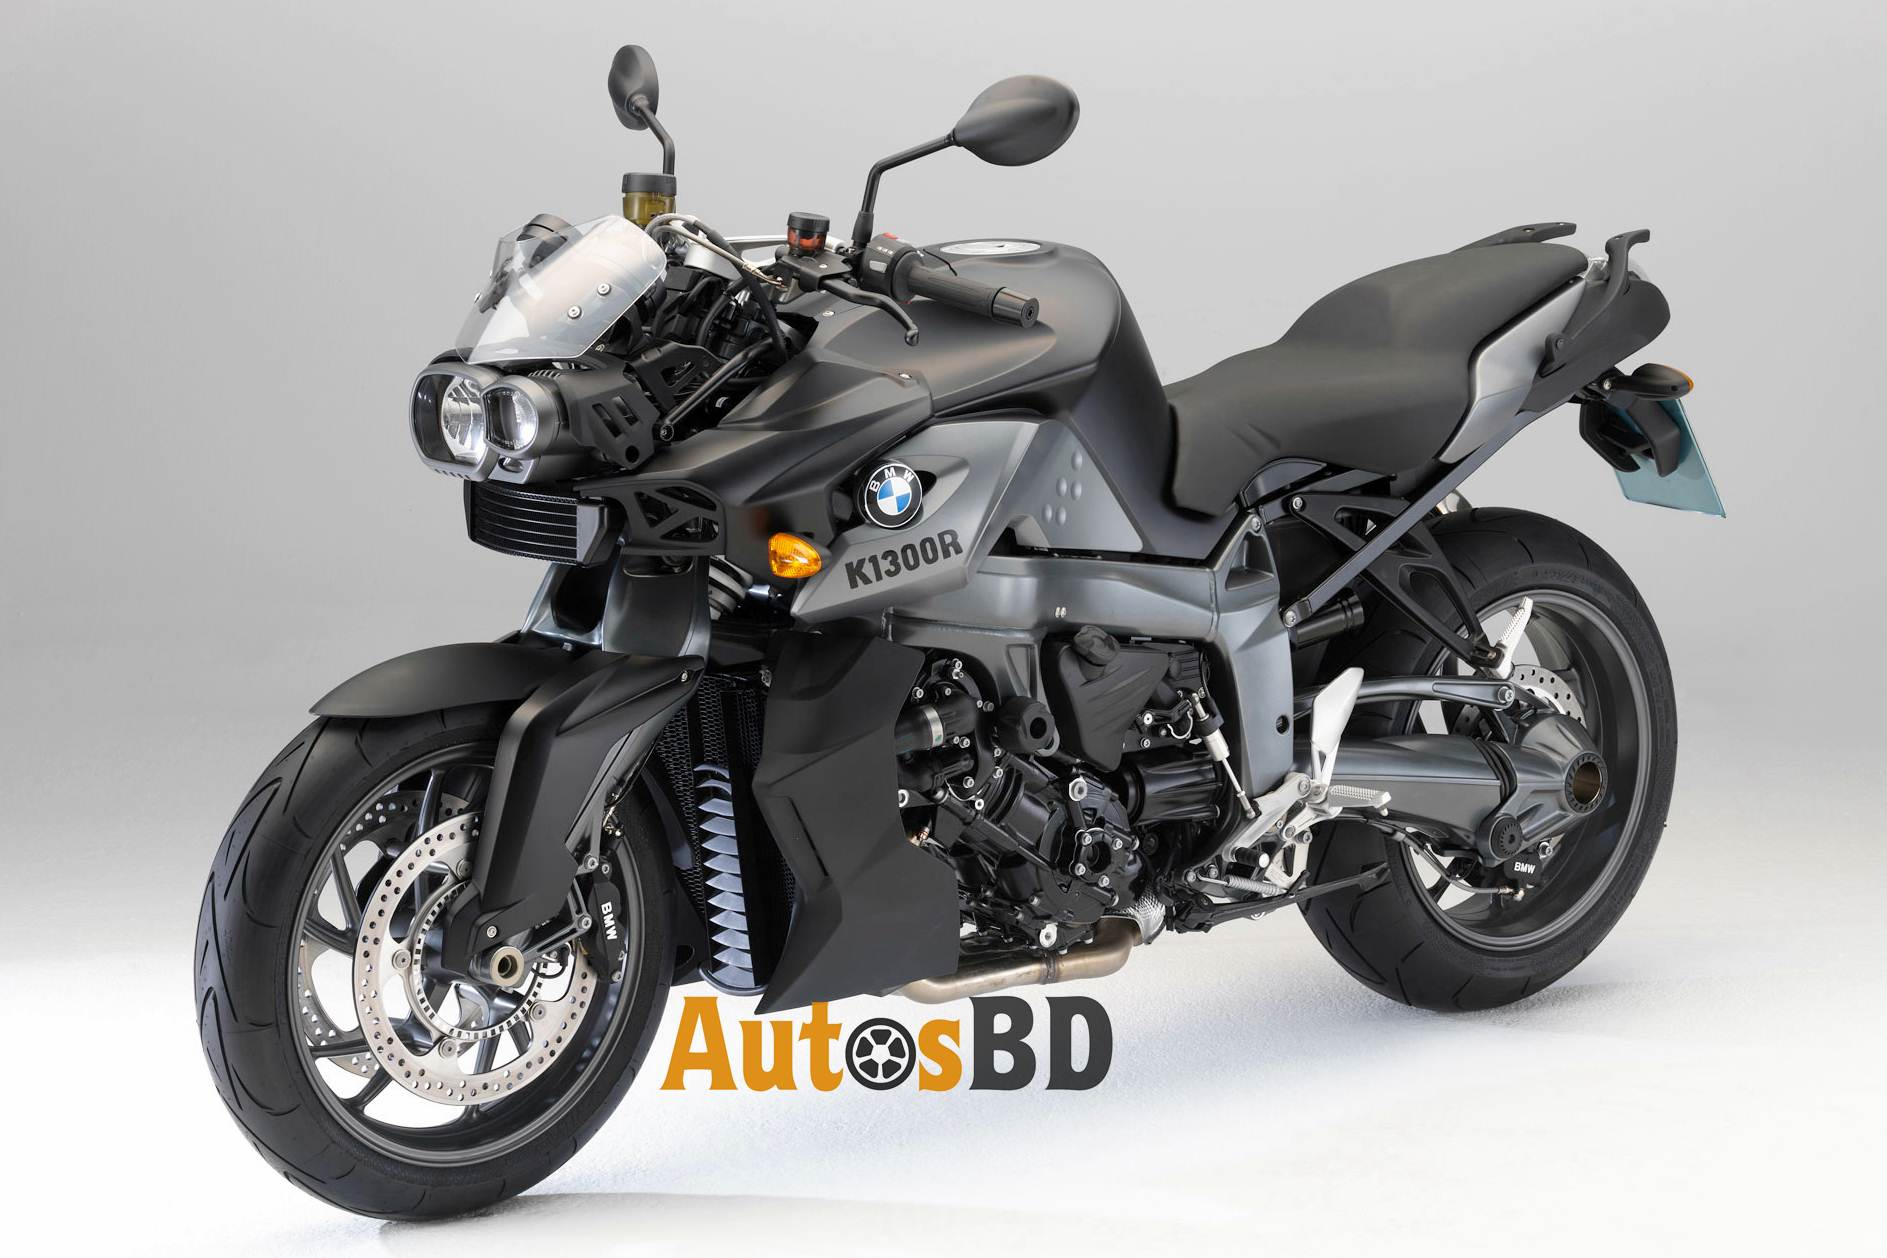 Bmw K1300r Motorcycle Price Specification Review